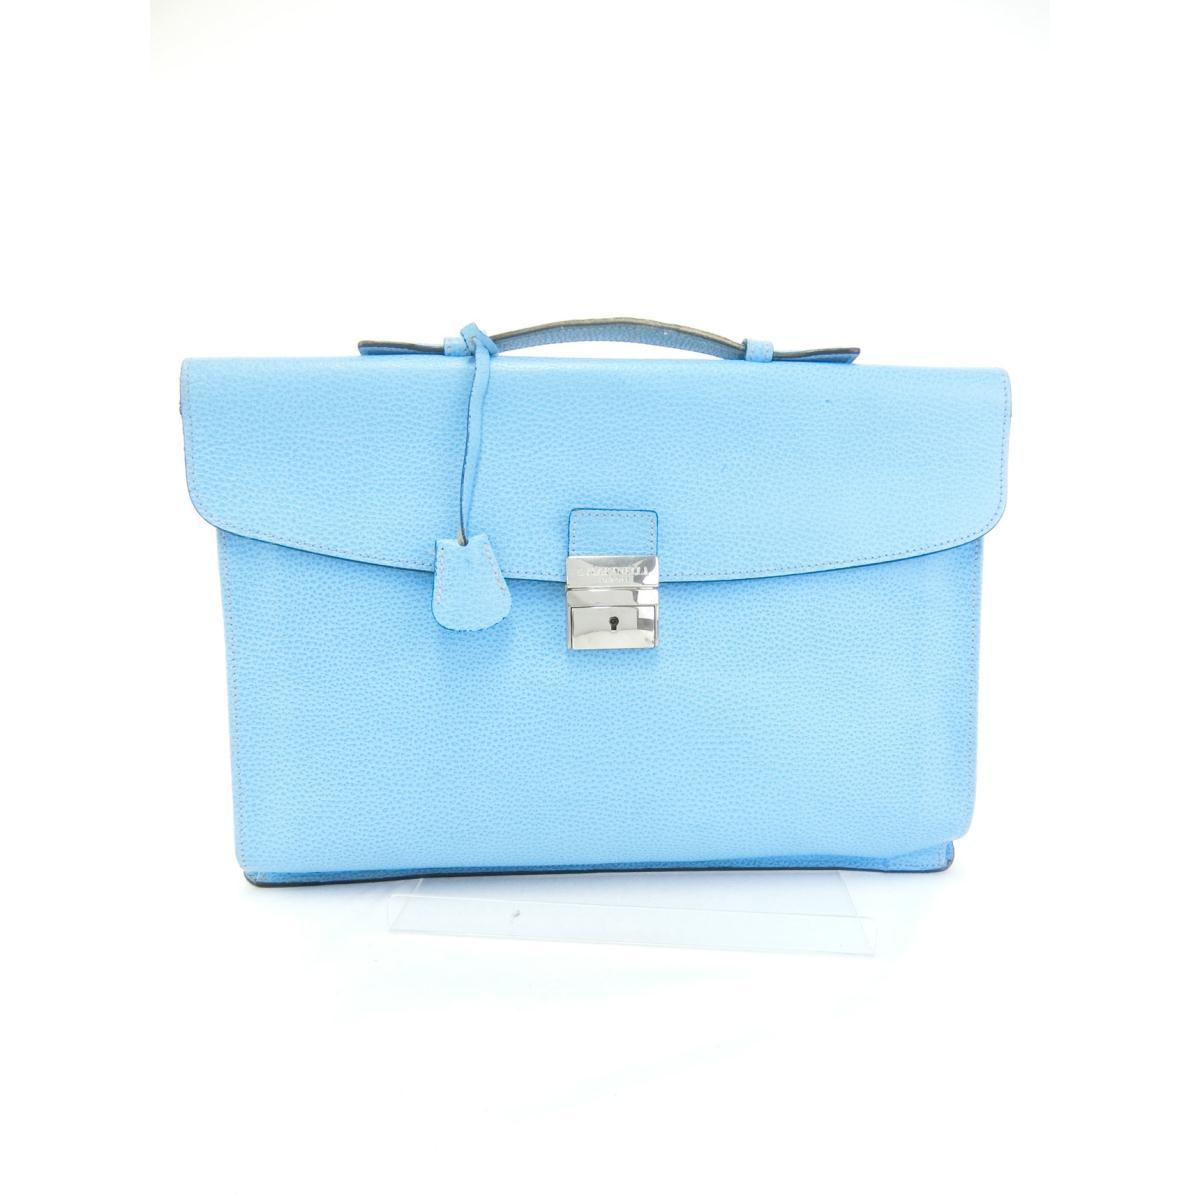 マリネッラ E.MARINELLA BAG【中古】